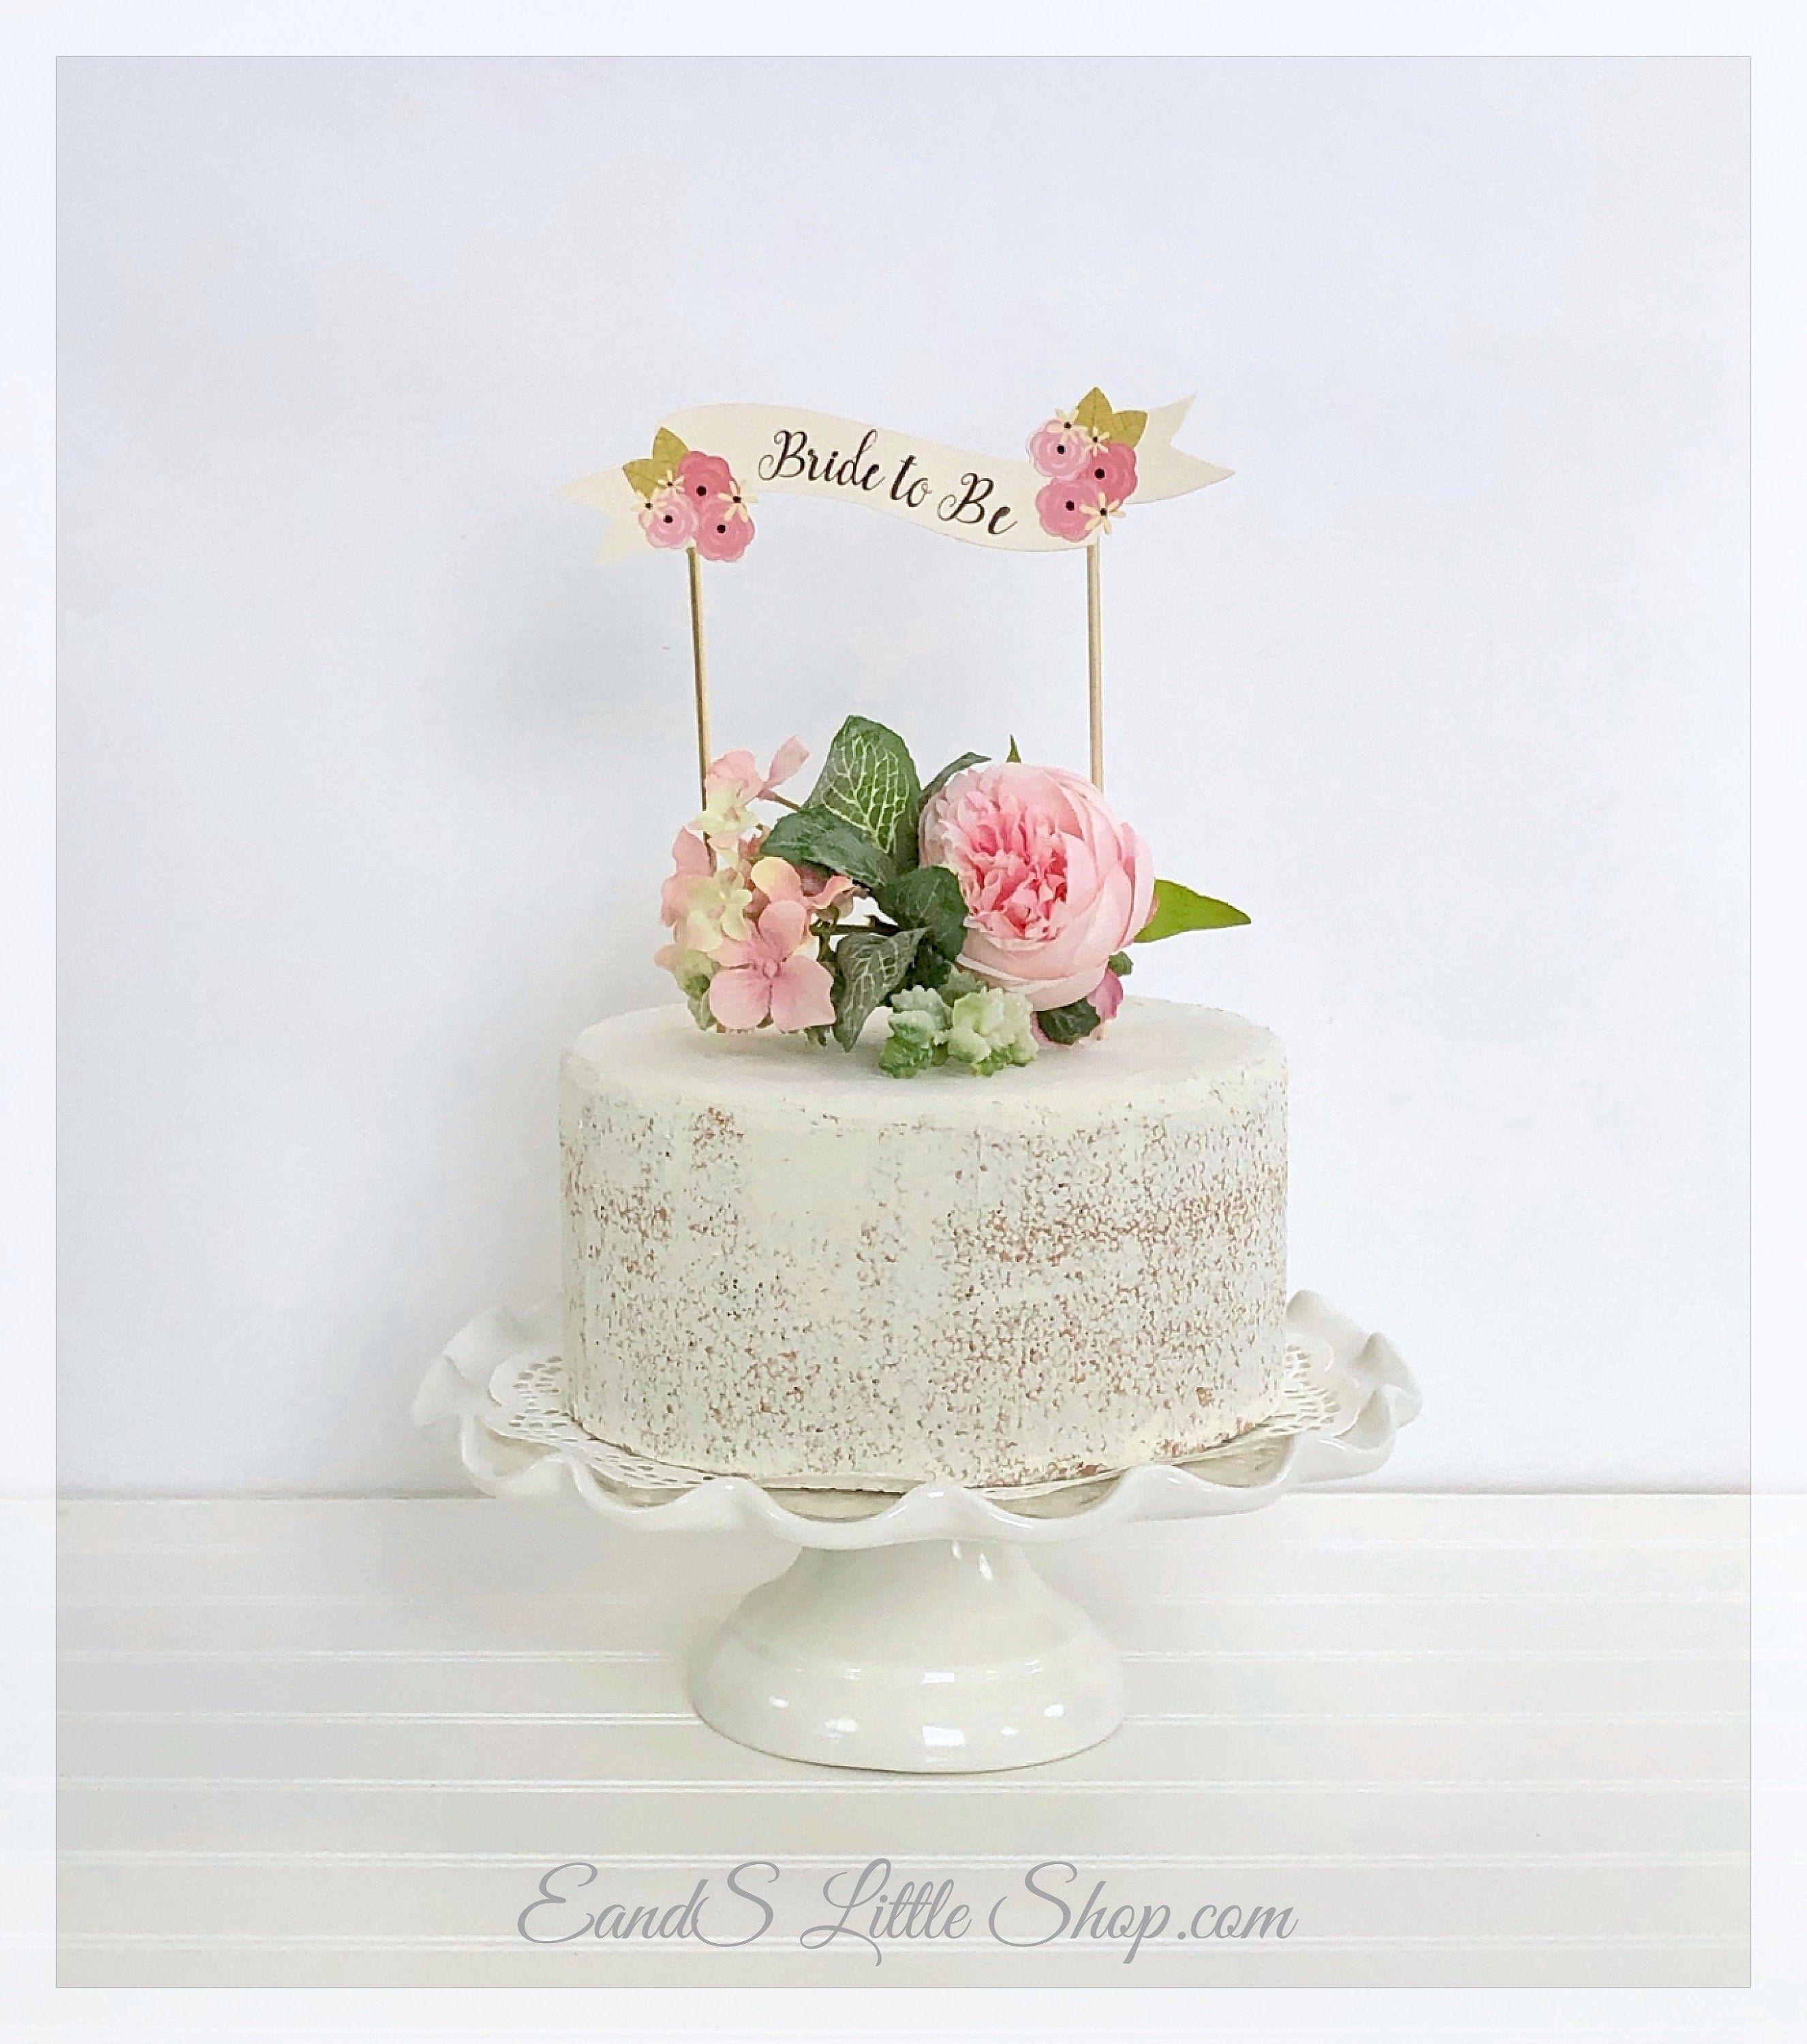 Bride To Be Cake Topper Wedding Cake Topper Bridal Cake Topper